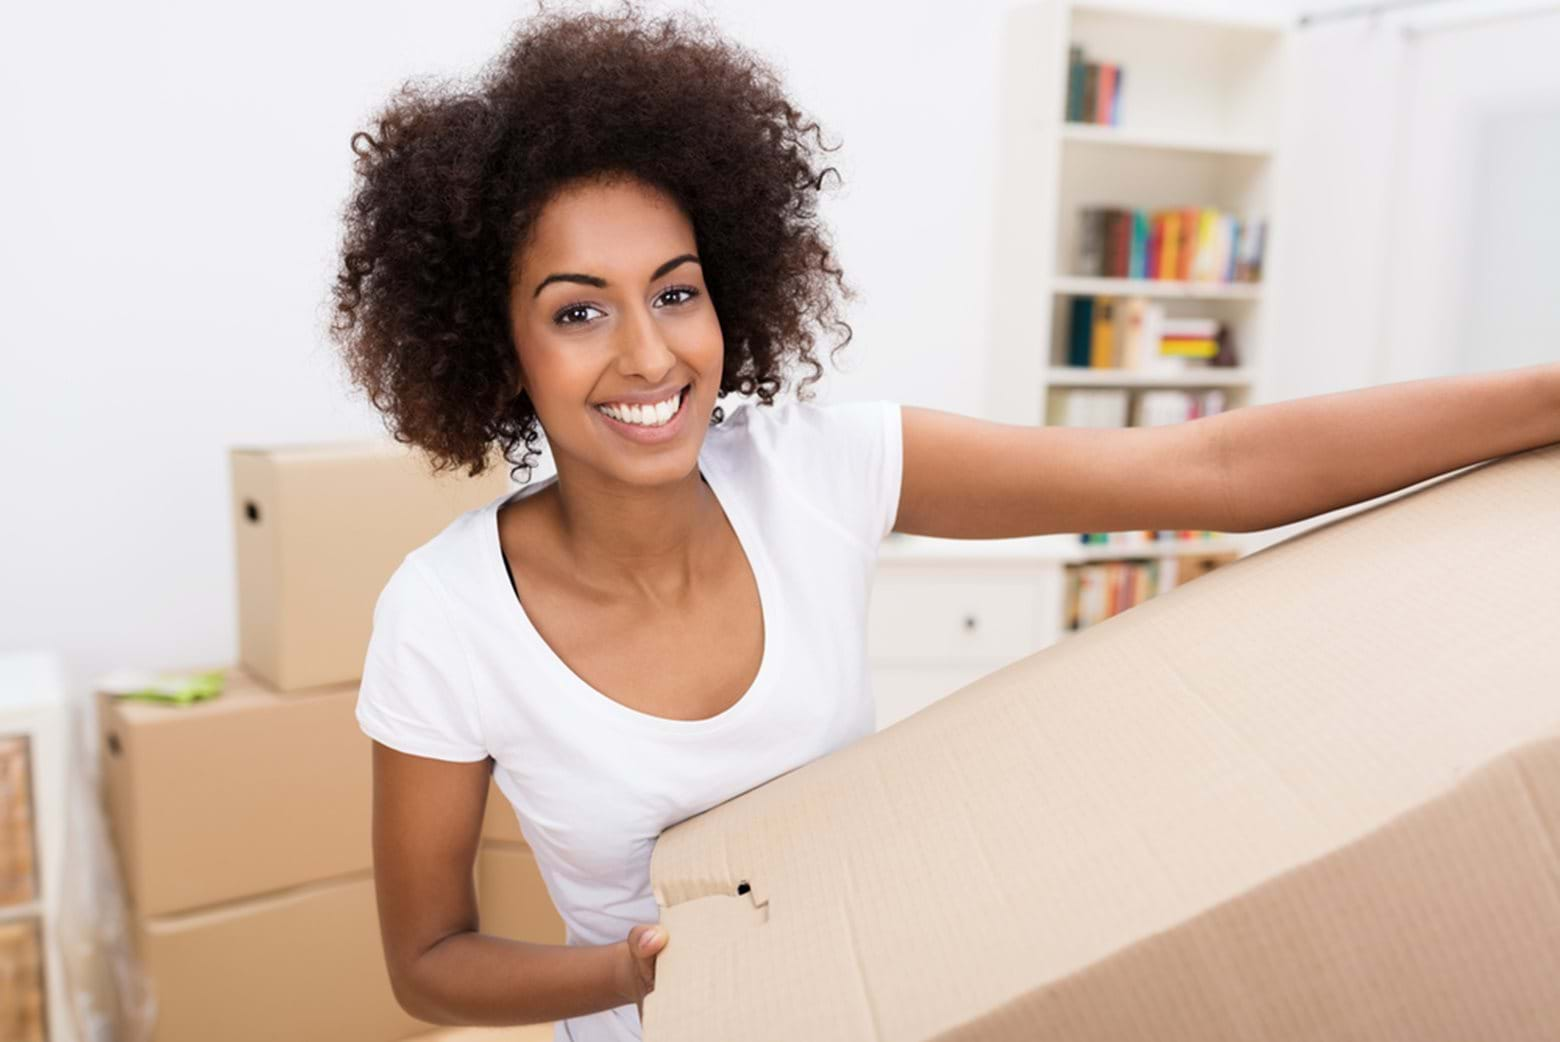 Smiling young woman carrying a cardboard box